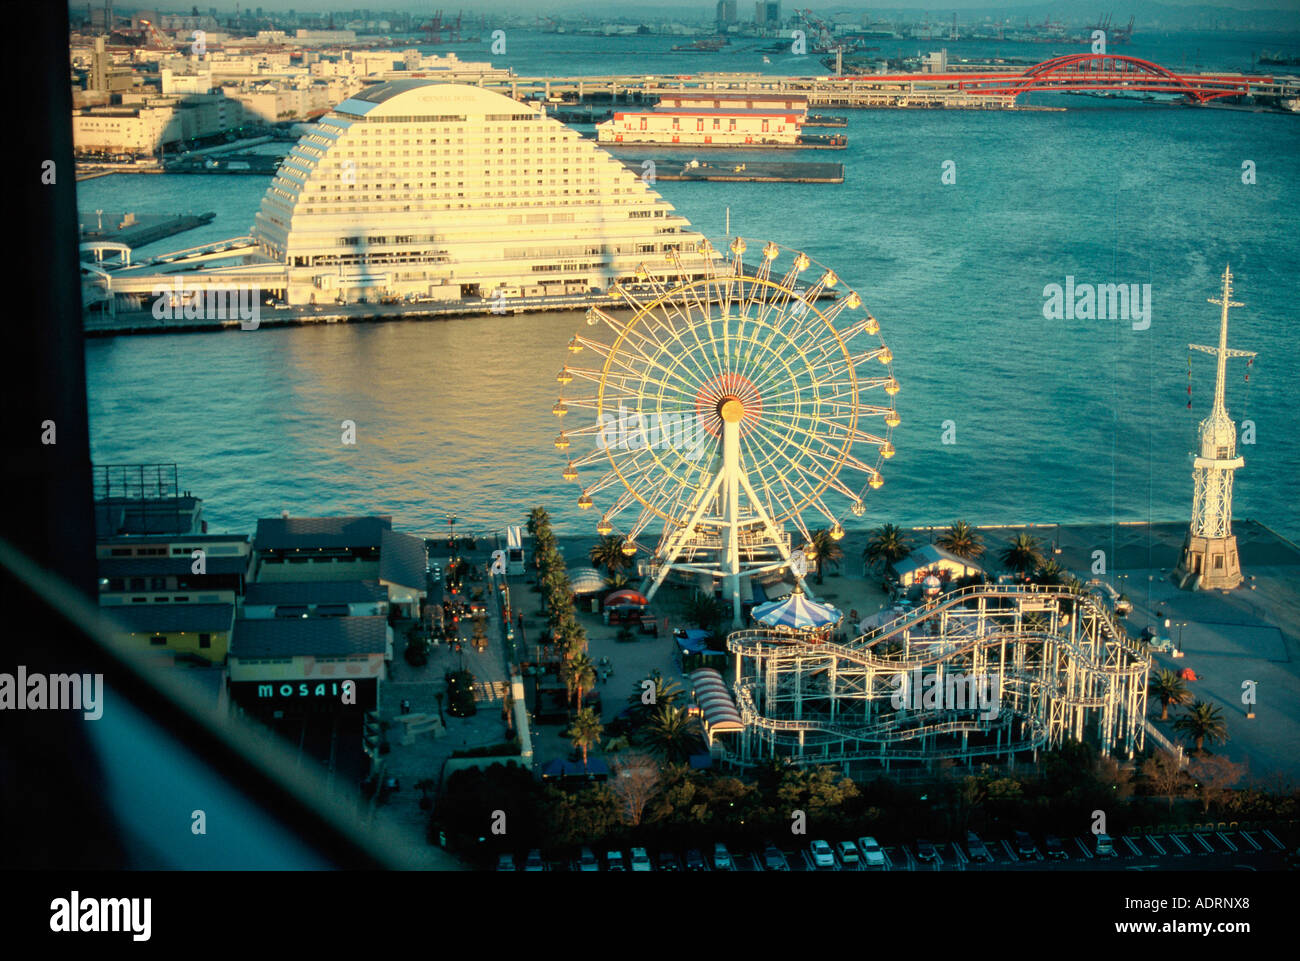 View of Kobe Port Kobe City Japan - Stock Image